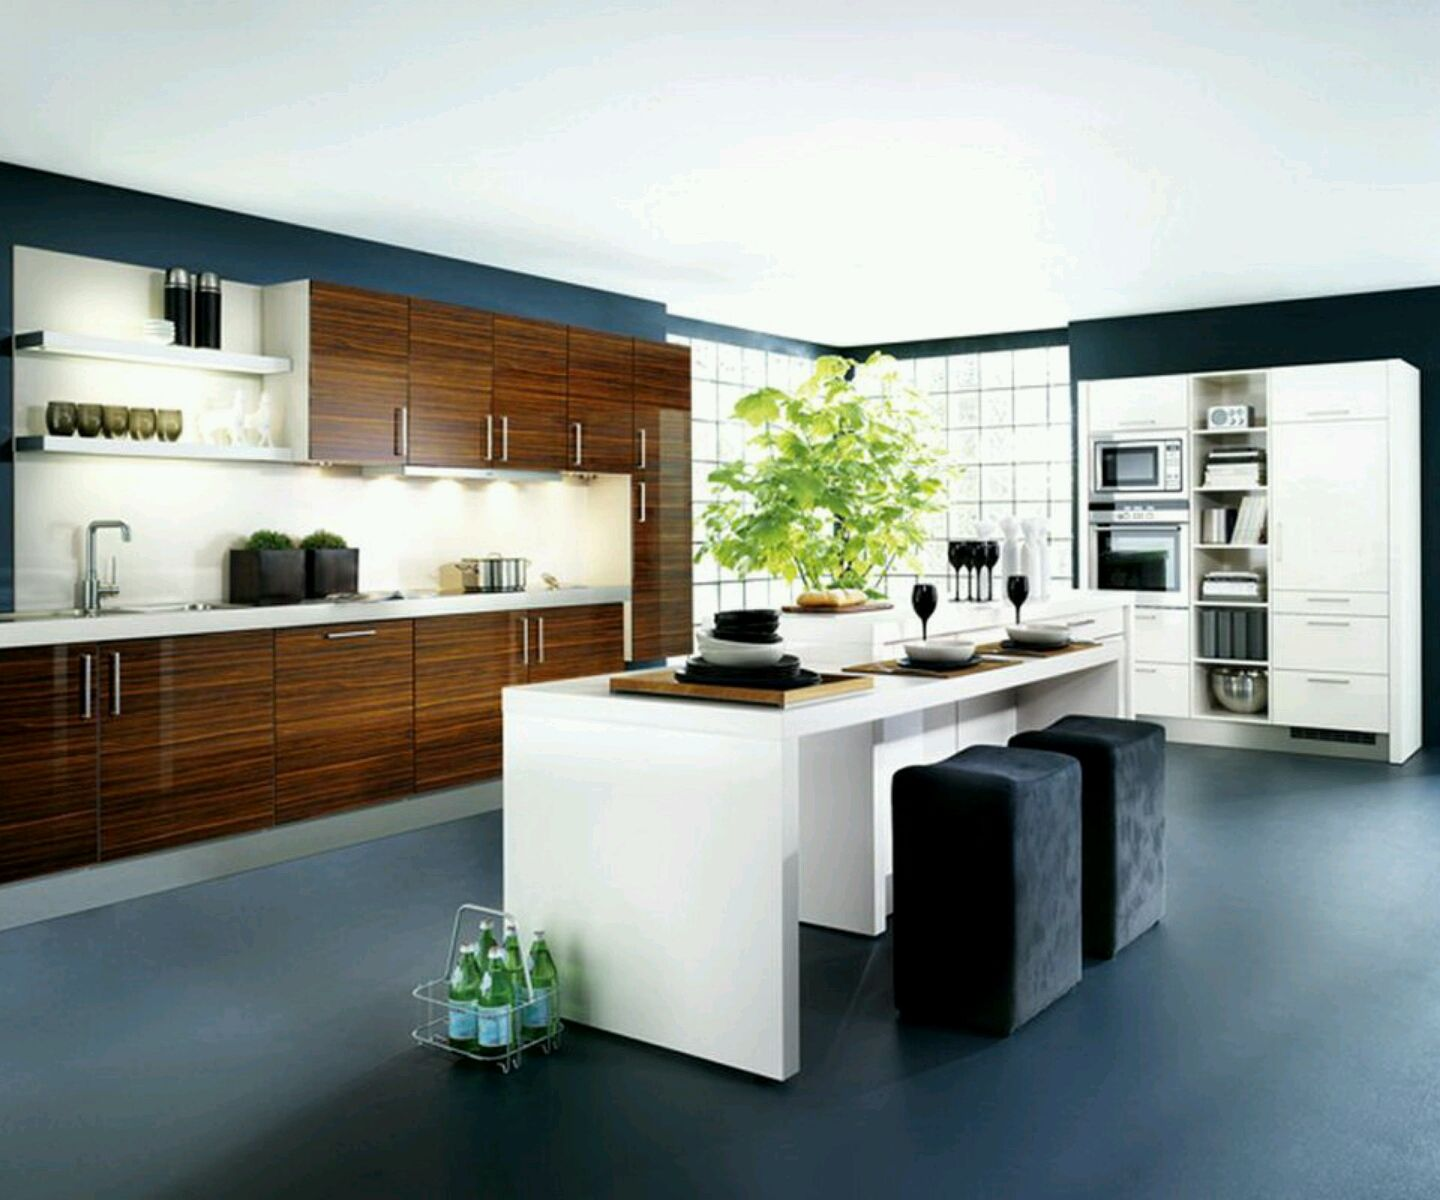 Kitchen Designs | New Home Designs Latest.: Kitchen Cabinets Designs Modern  Homes.